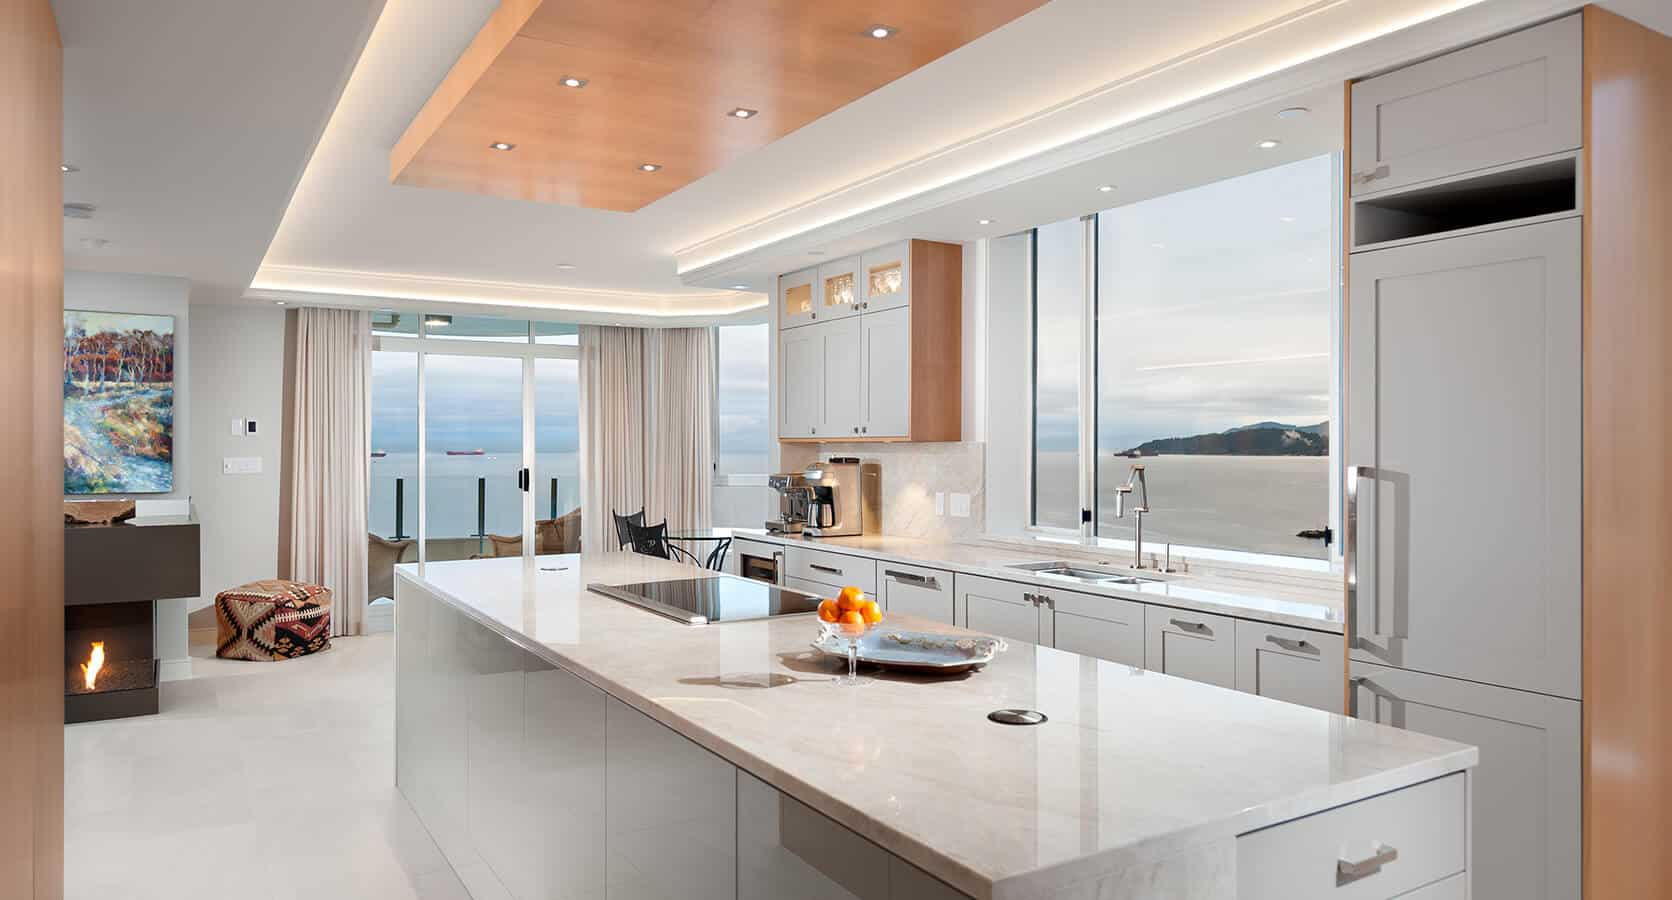 Home Renovation North Vancouver Best Kitchen Award to Shakespeare Homes